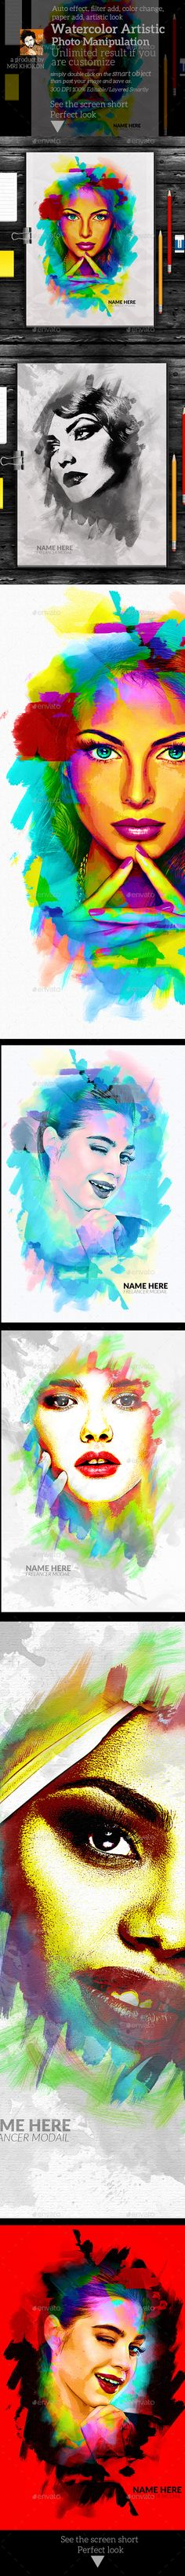 Watercolor Artistic Photo Manipulation — Photoshop PSD #effect #photo template • Download ➝ https://graphicriver.net/item/watercolor-artistic-photo-manipulation/19119842?ref=pxcr